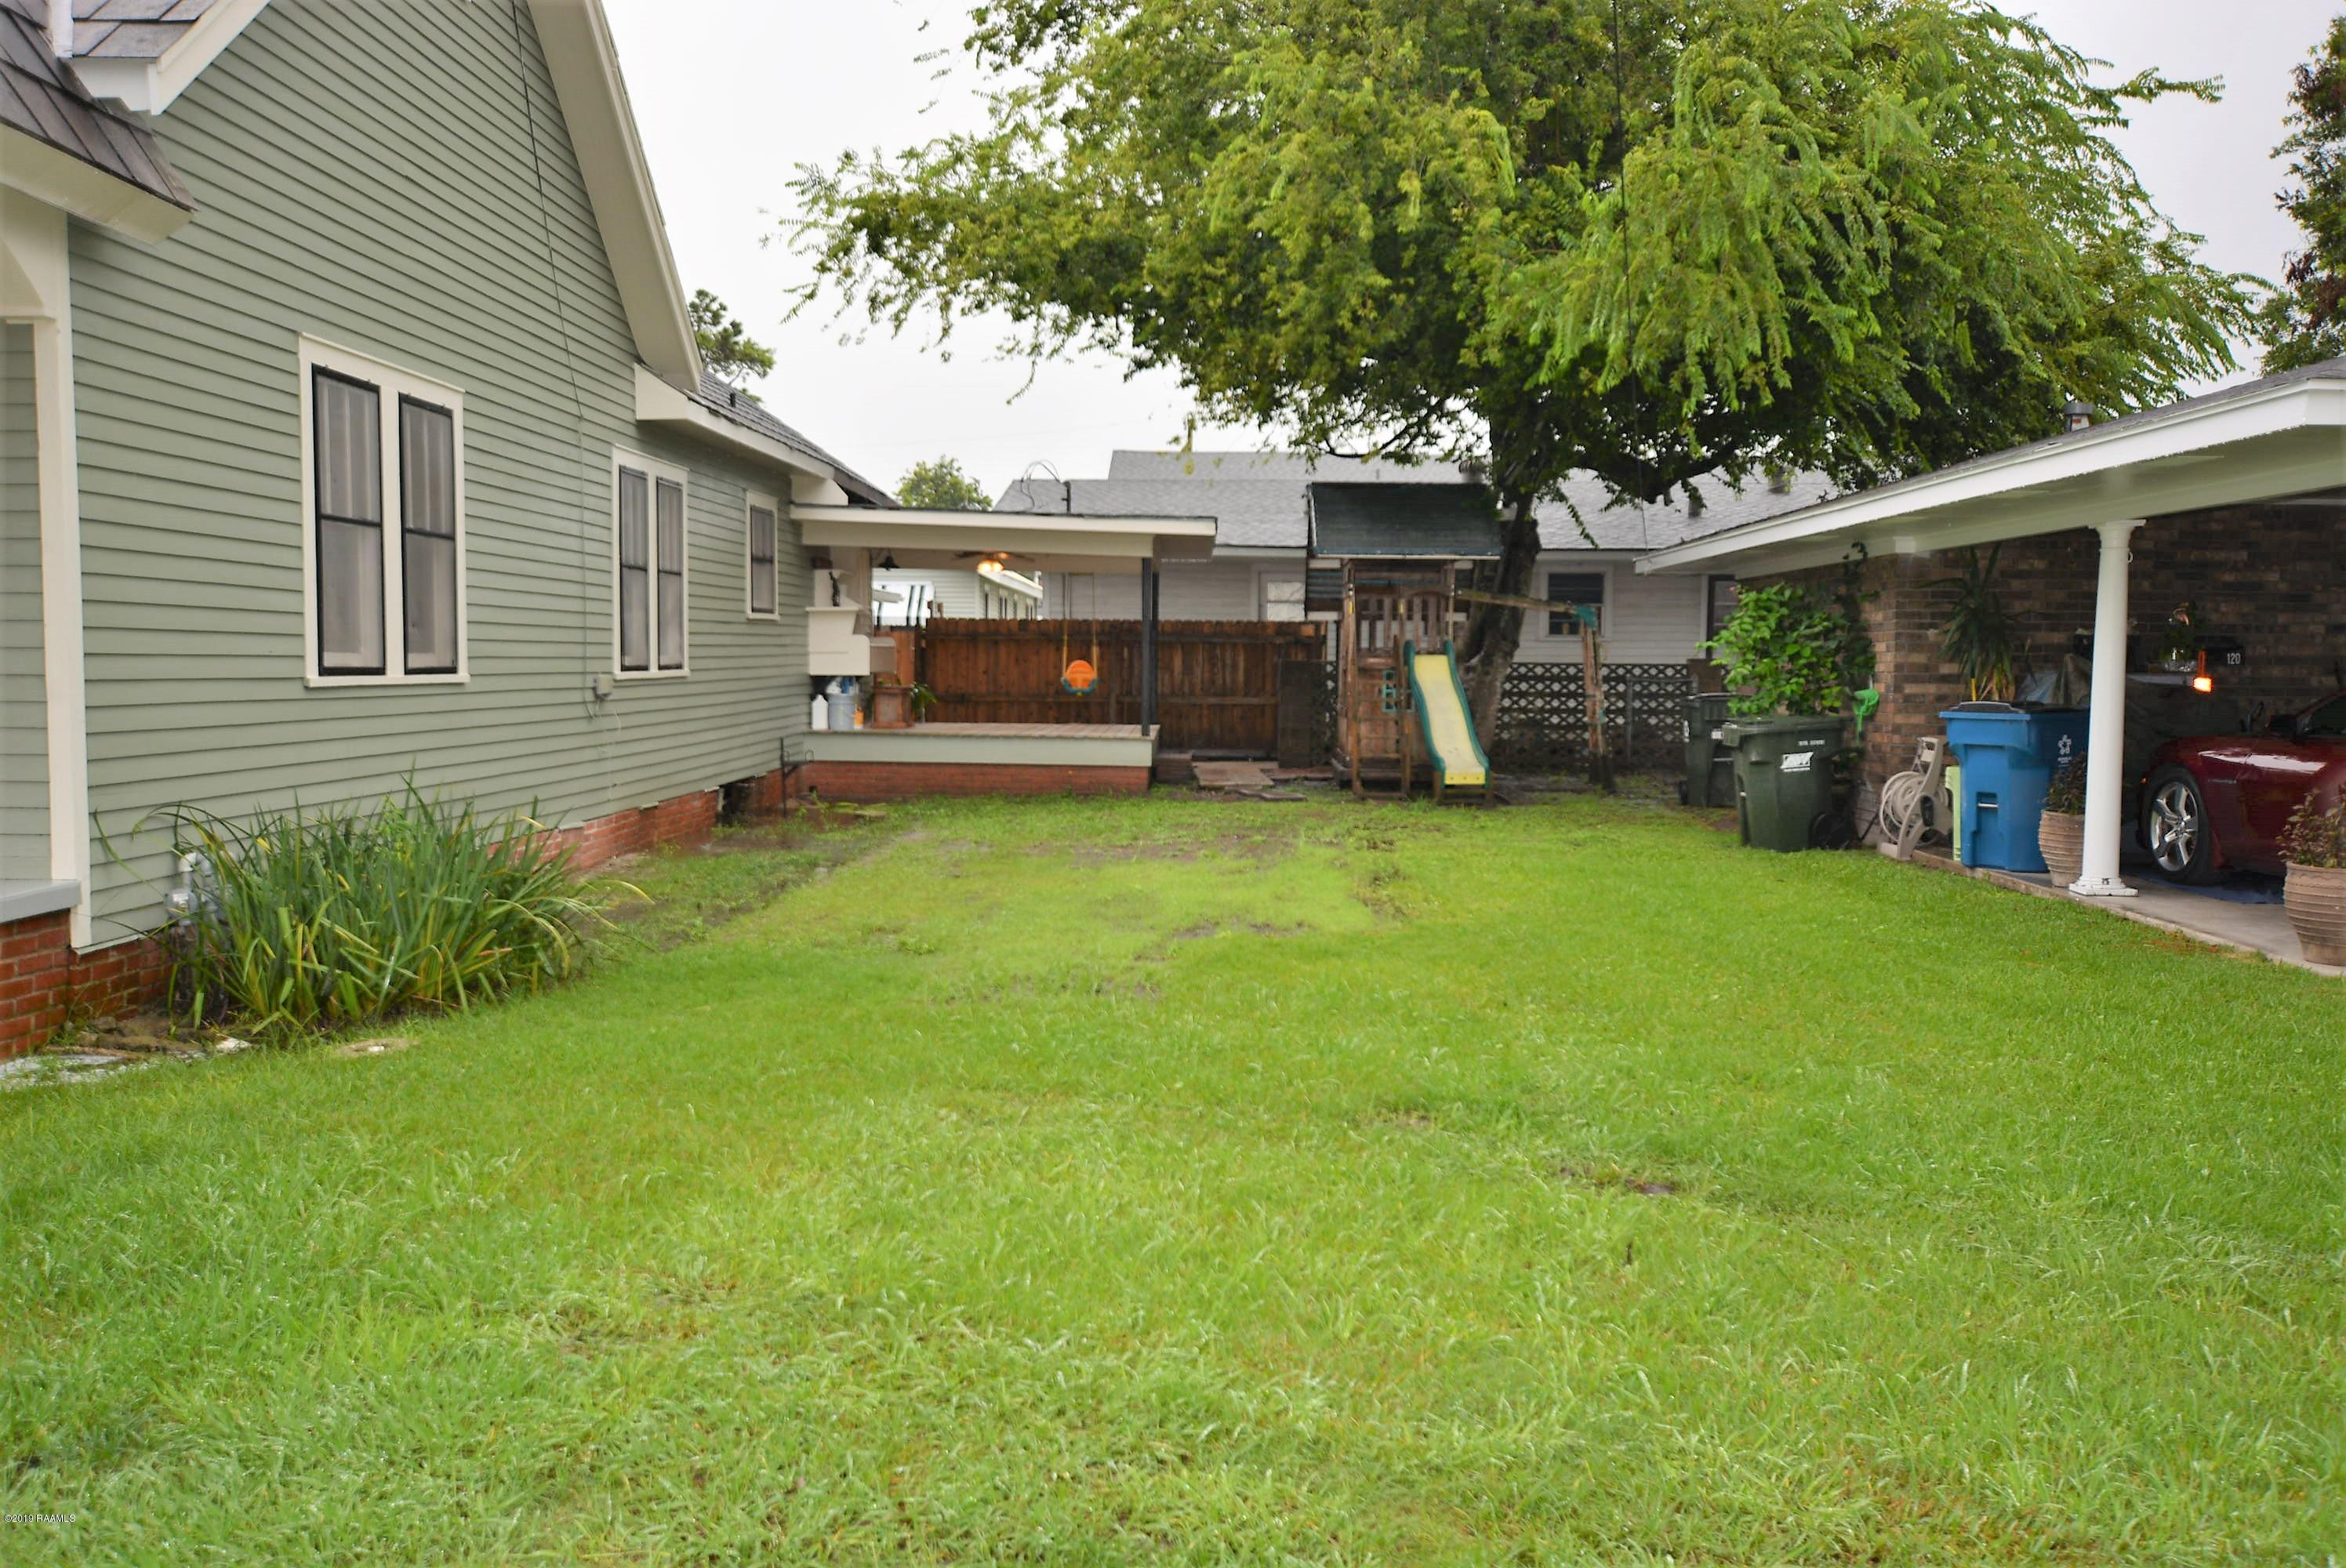 124 Washington Street E, New Iberia, LA 70560 Photo #31